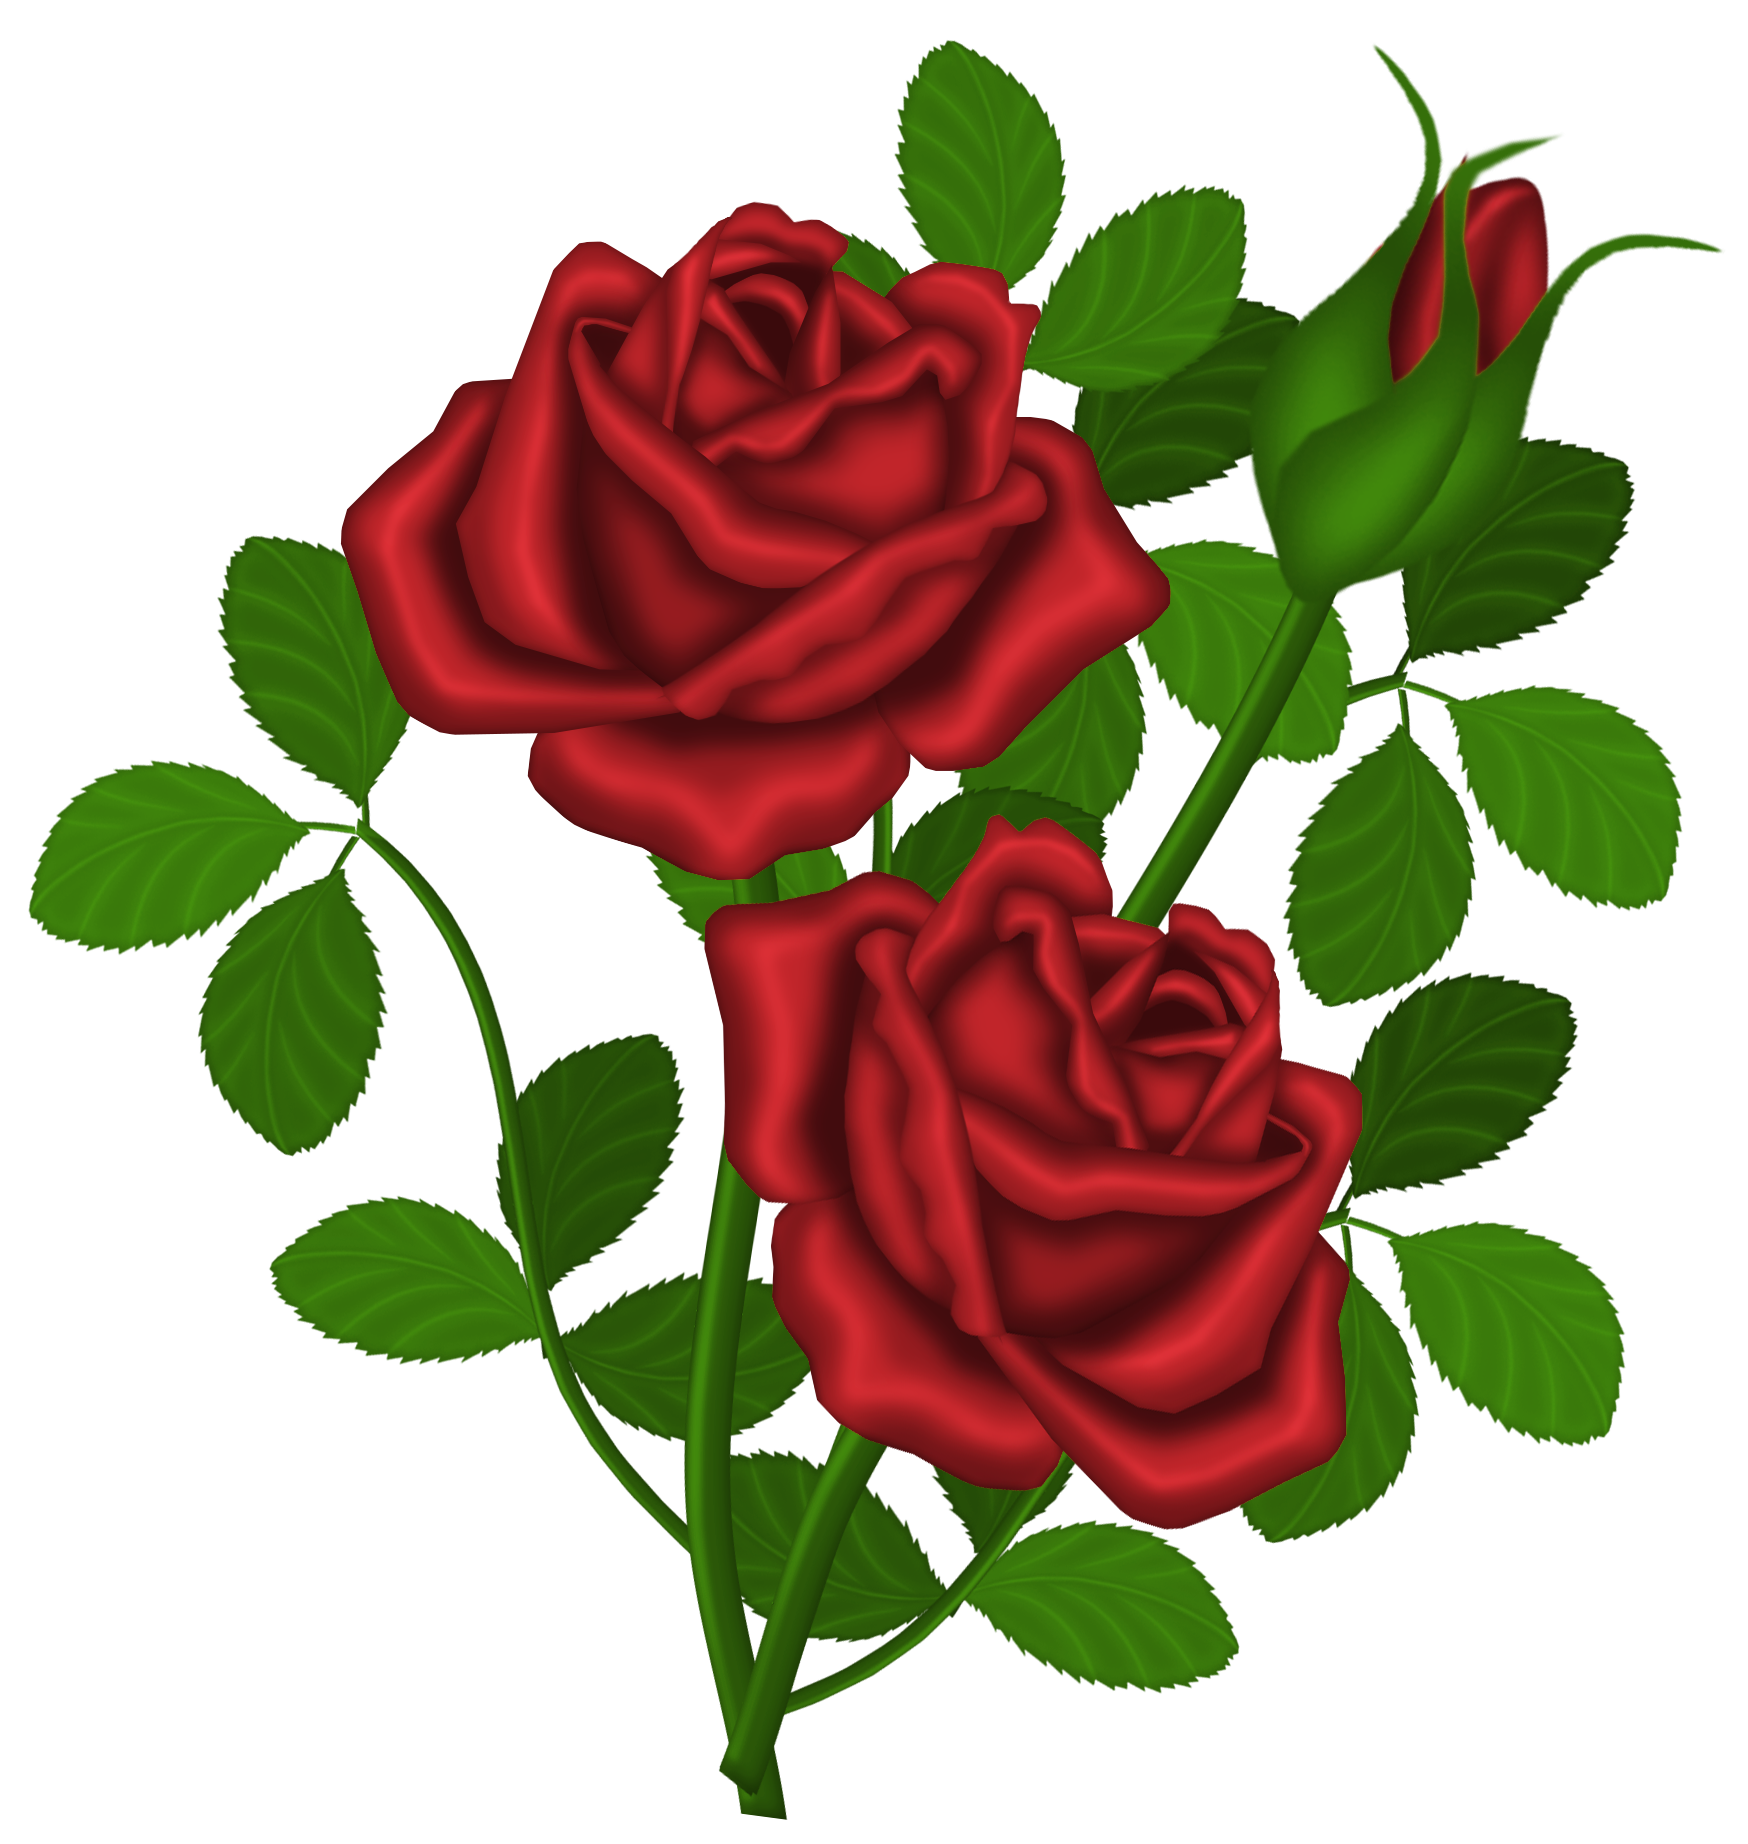 Red roses png picture. Clipart rose dead rose